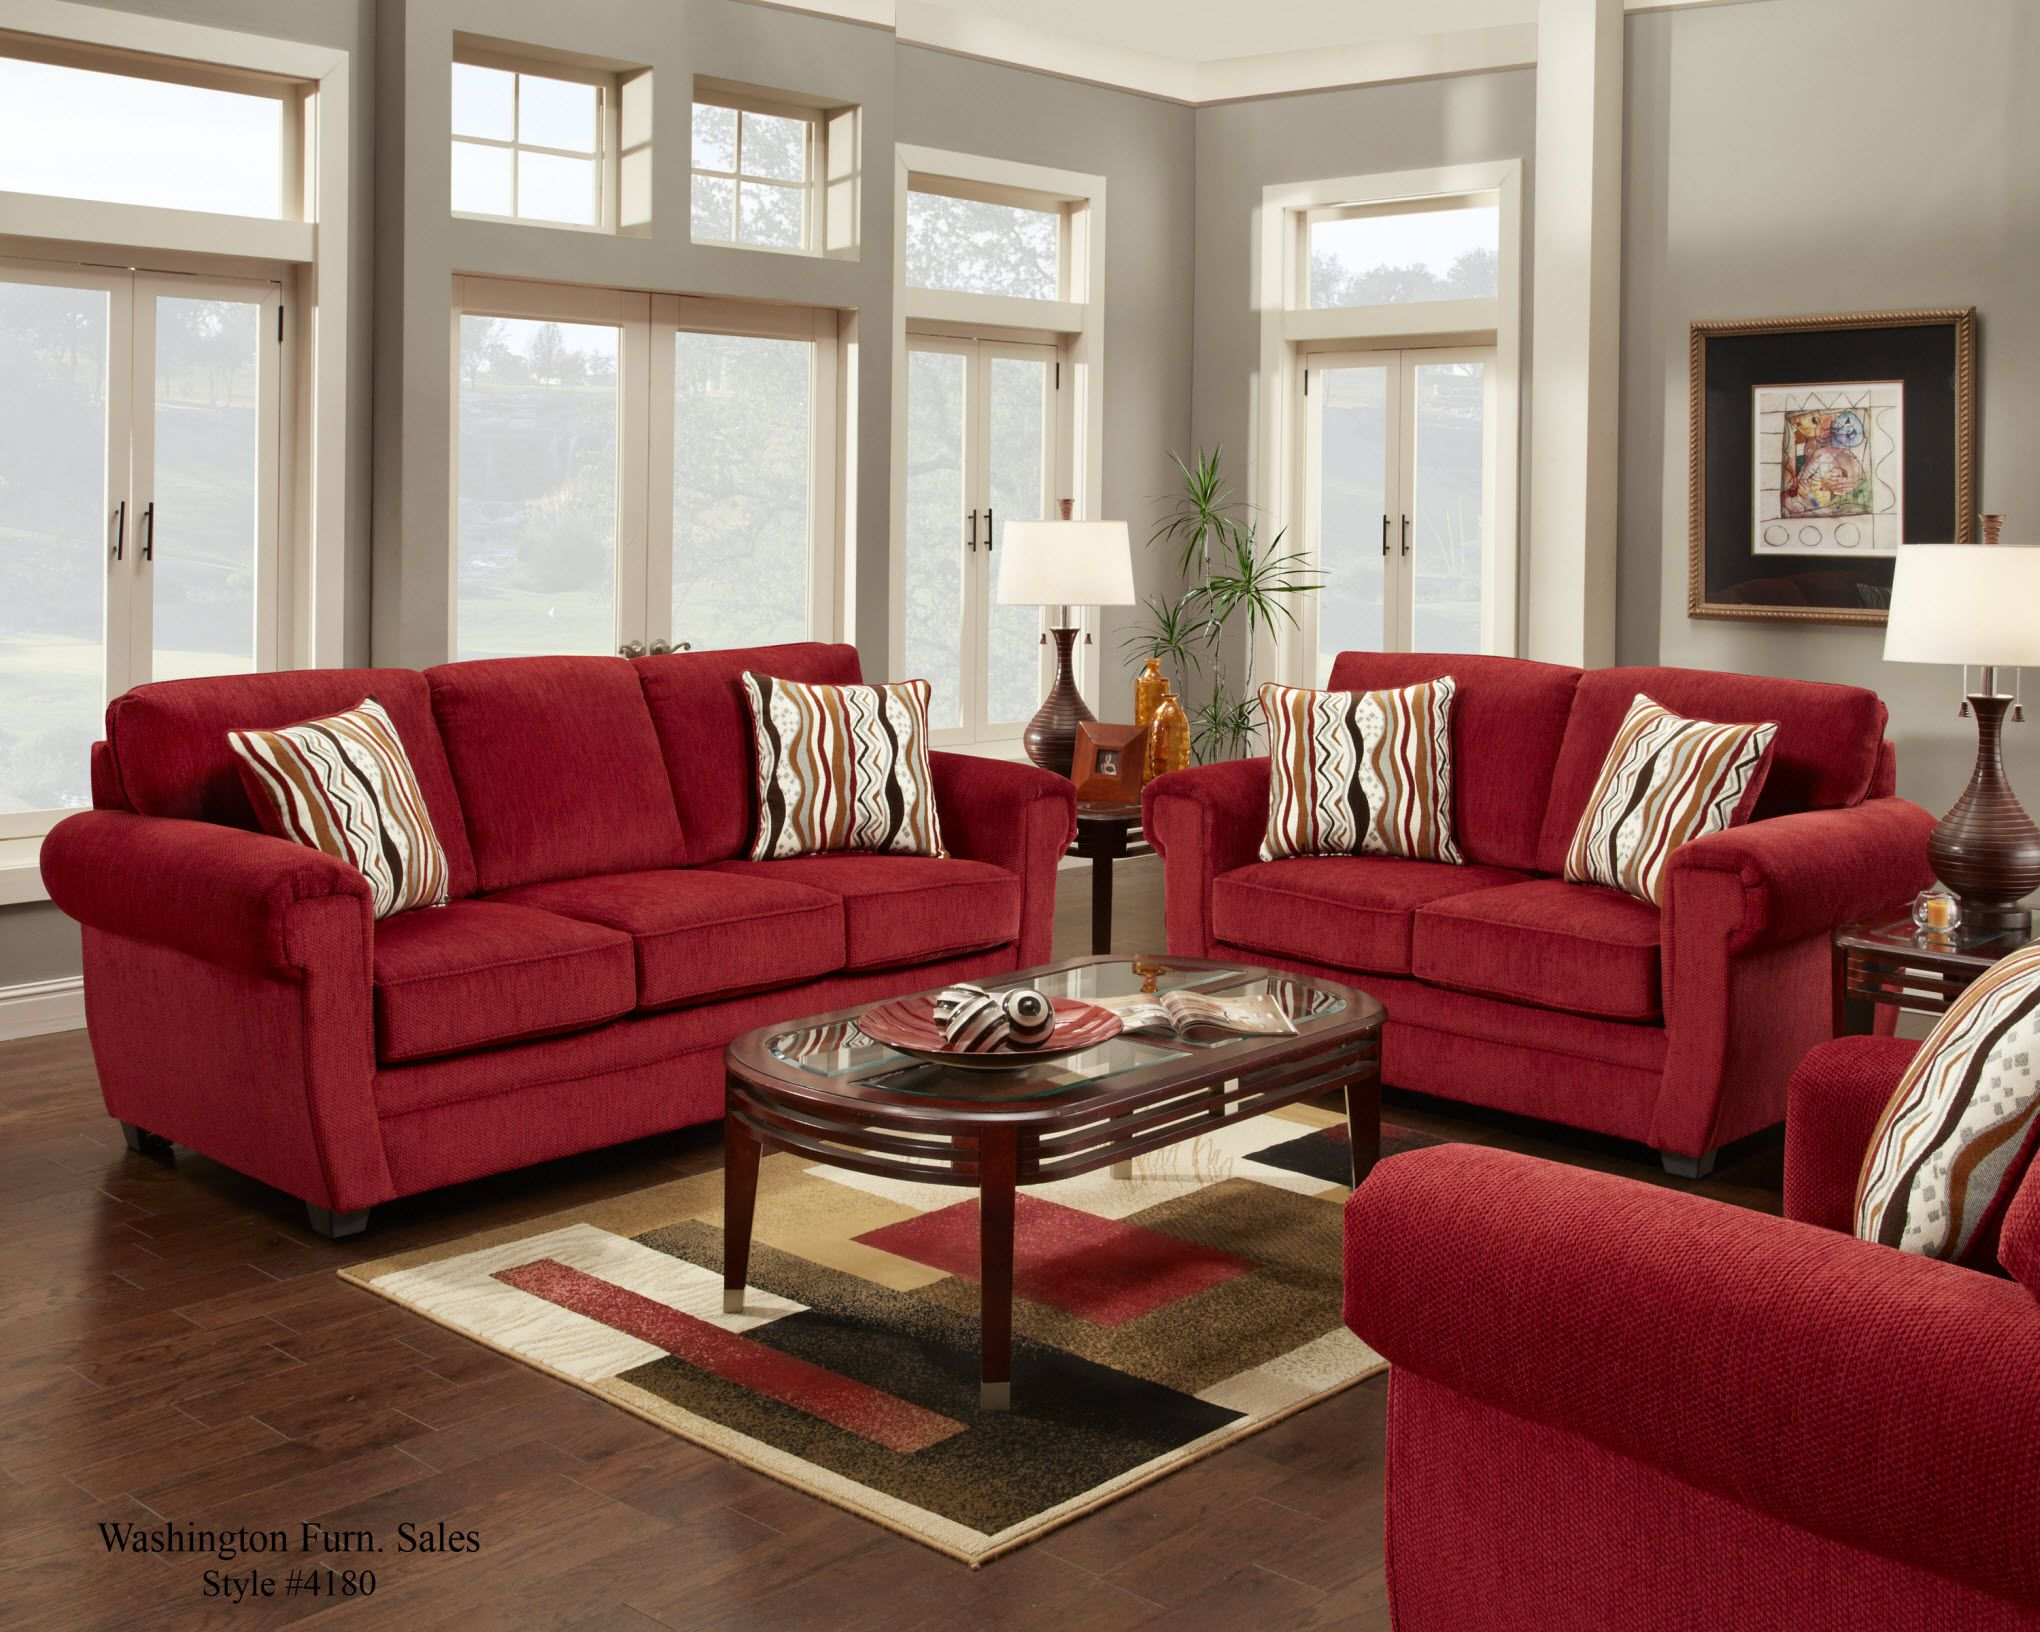 4180 washington samson red sofa and loveseat www for Great room accessories